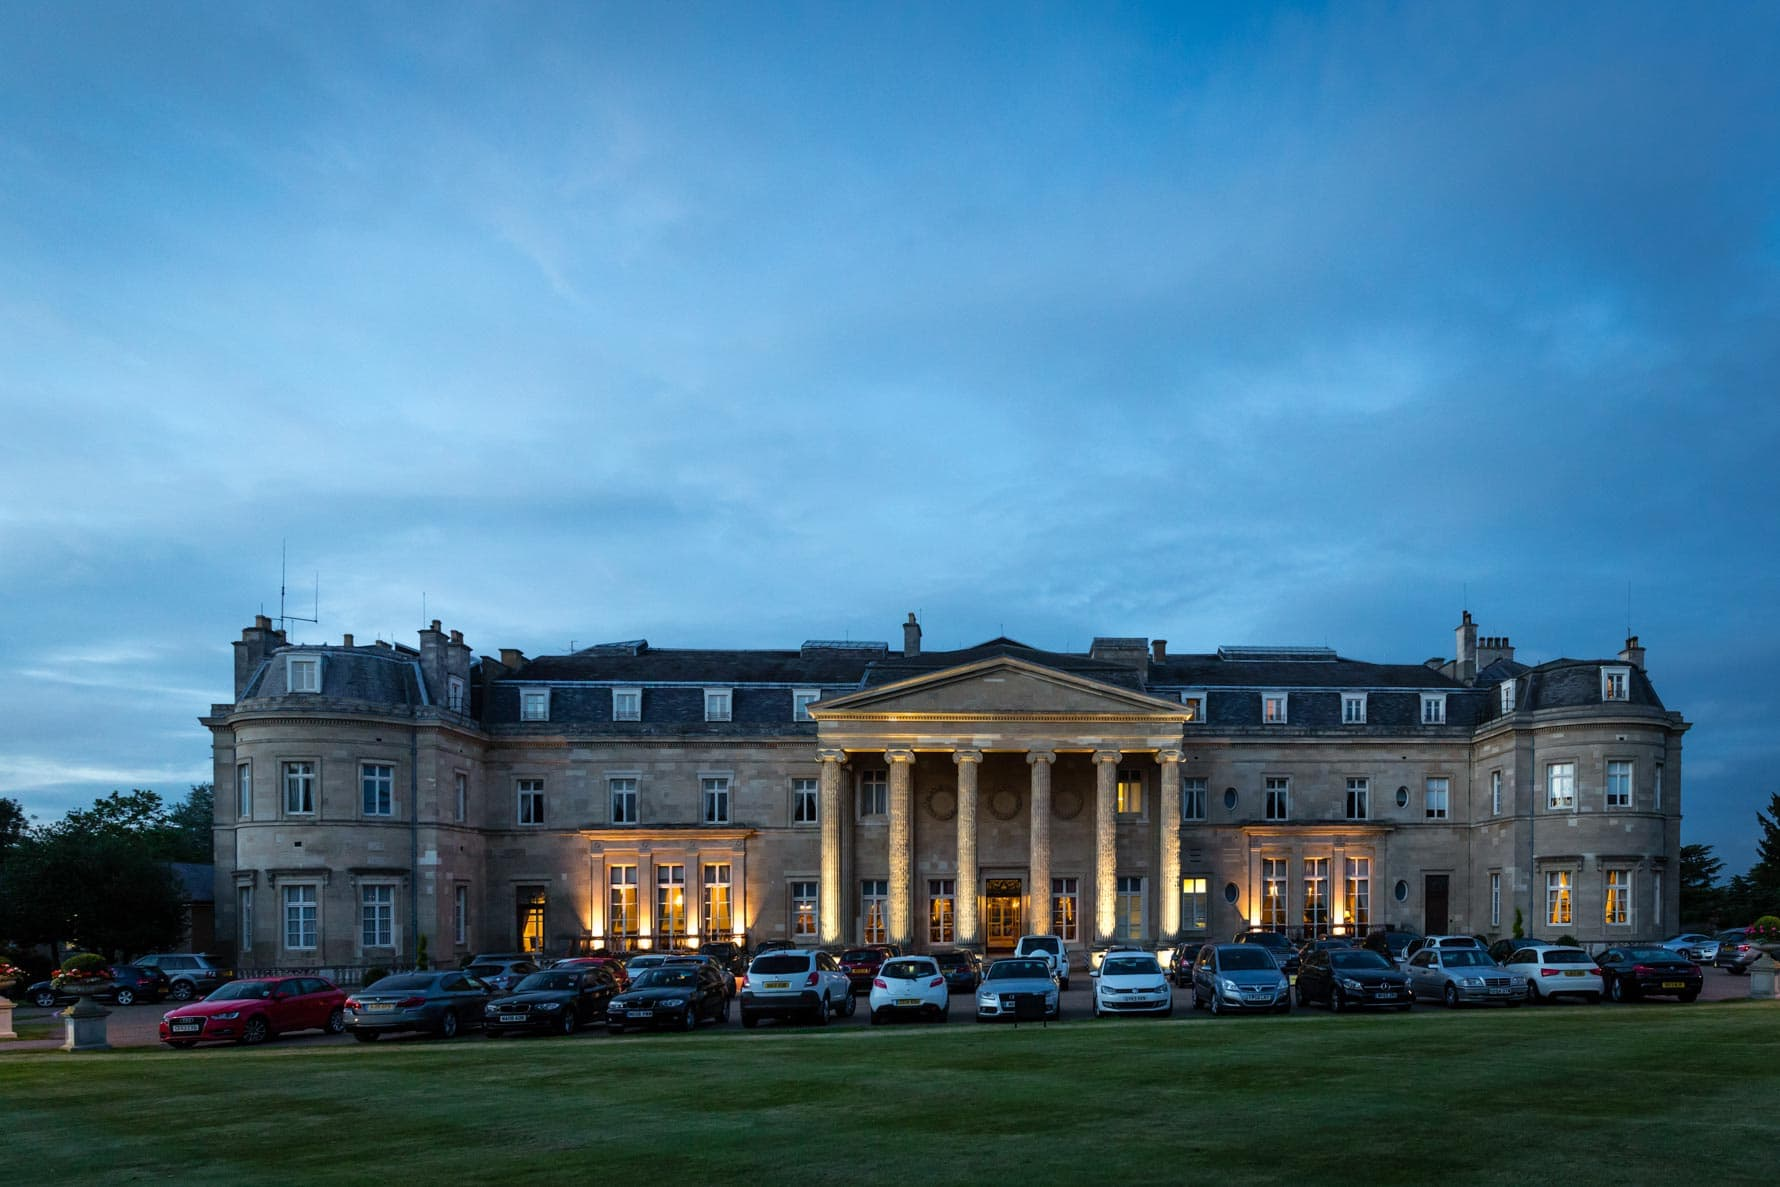 Luton Hoo Hotel in Bedfordshire at dusk